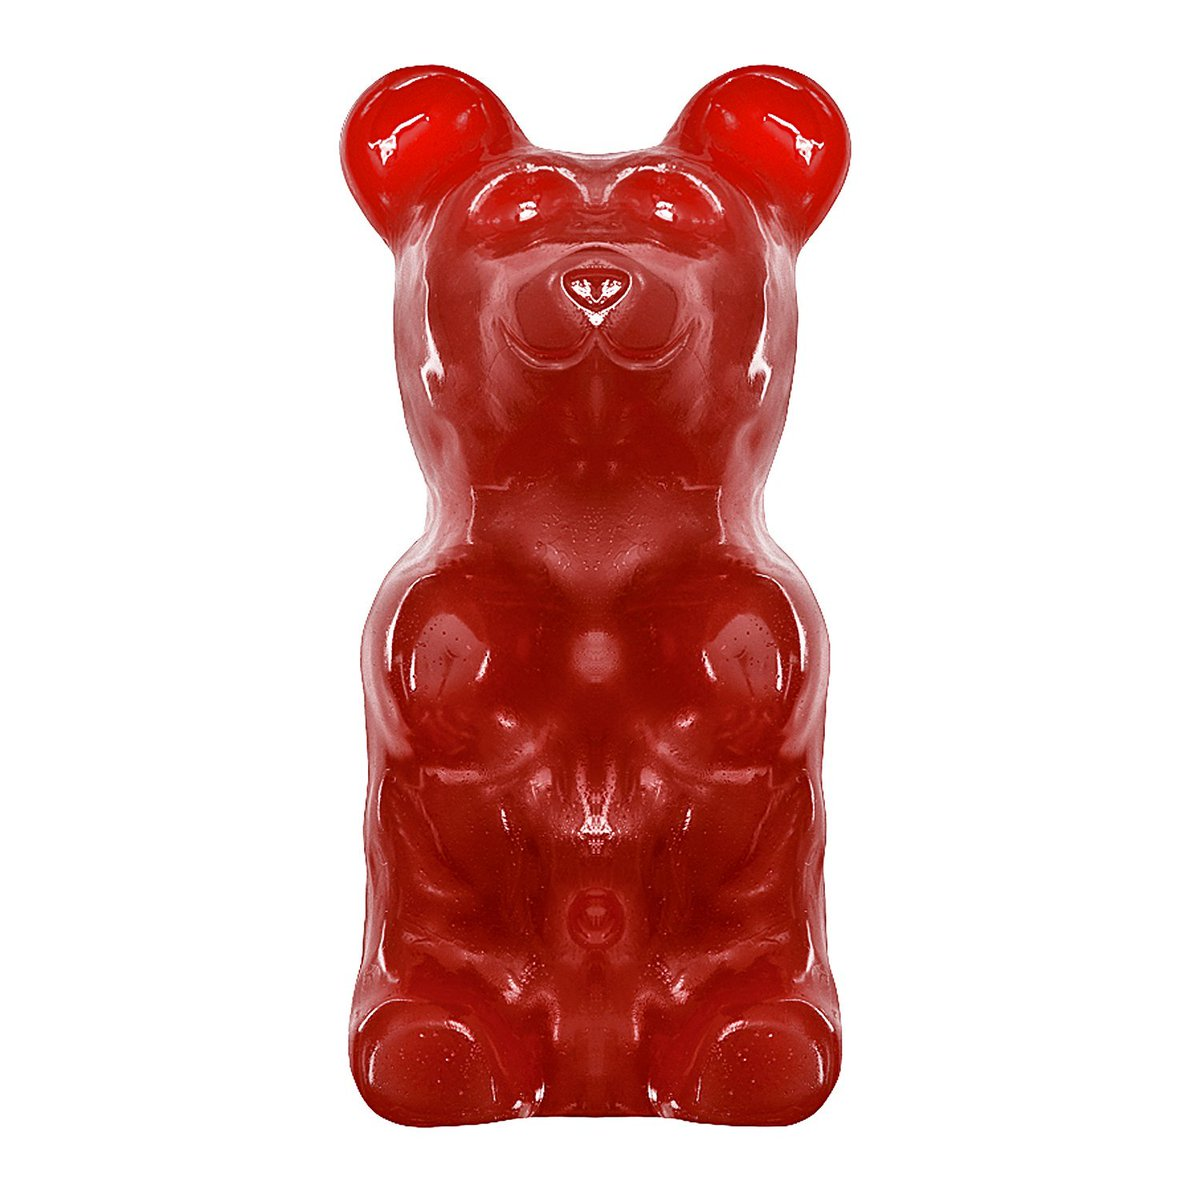 The girls get giant gummy bears cause I'm a dork like that  🌟 Price valid when posted; we are not the sellers; we do not own this image #Ad Affiliate🌟 🎀 We need your comment please do not forget it! 🎀 🦚🦚DID YOU GET ONE? Let us know 🦚🦚